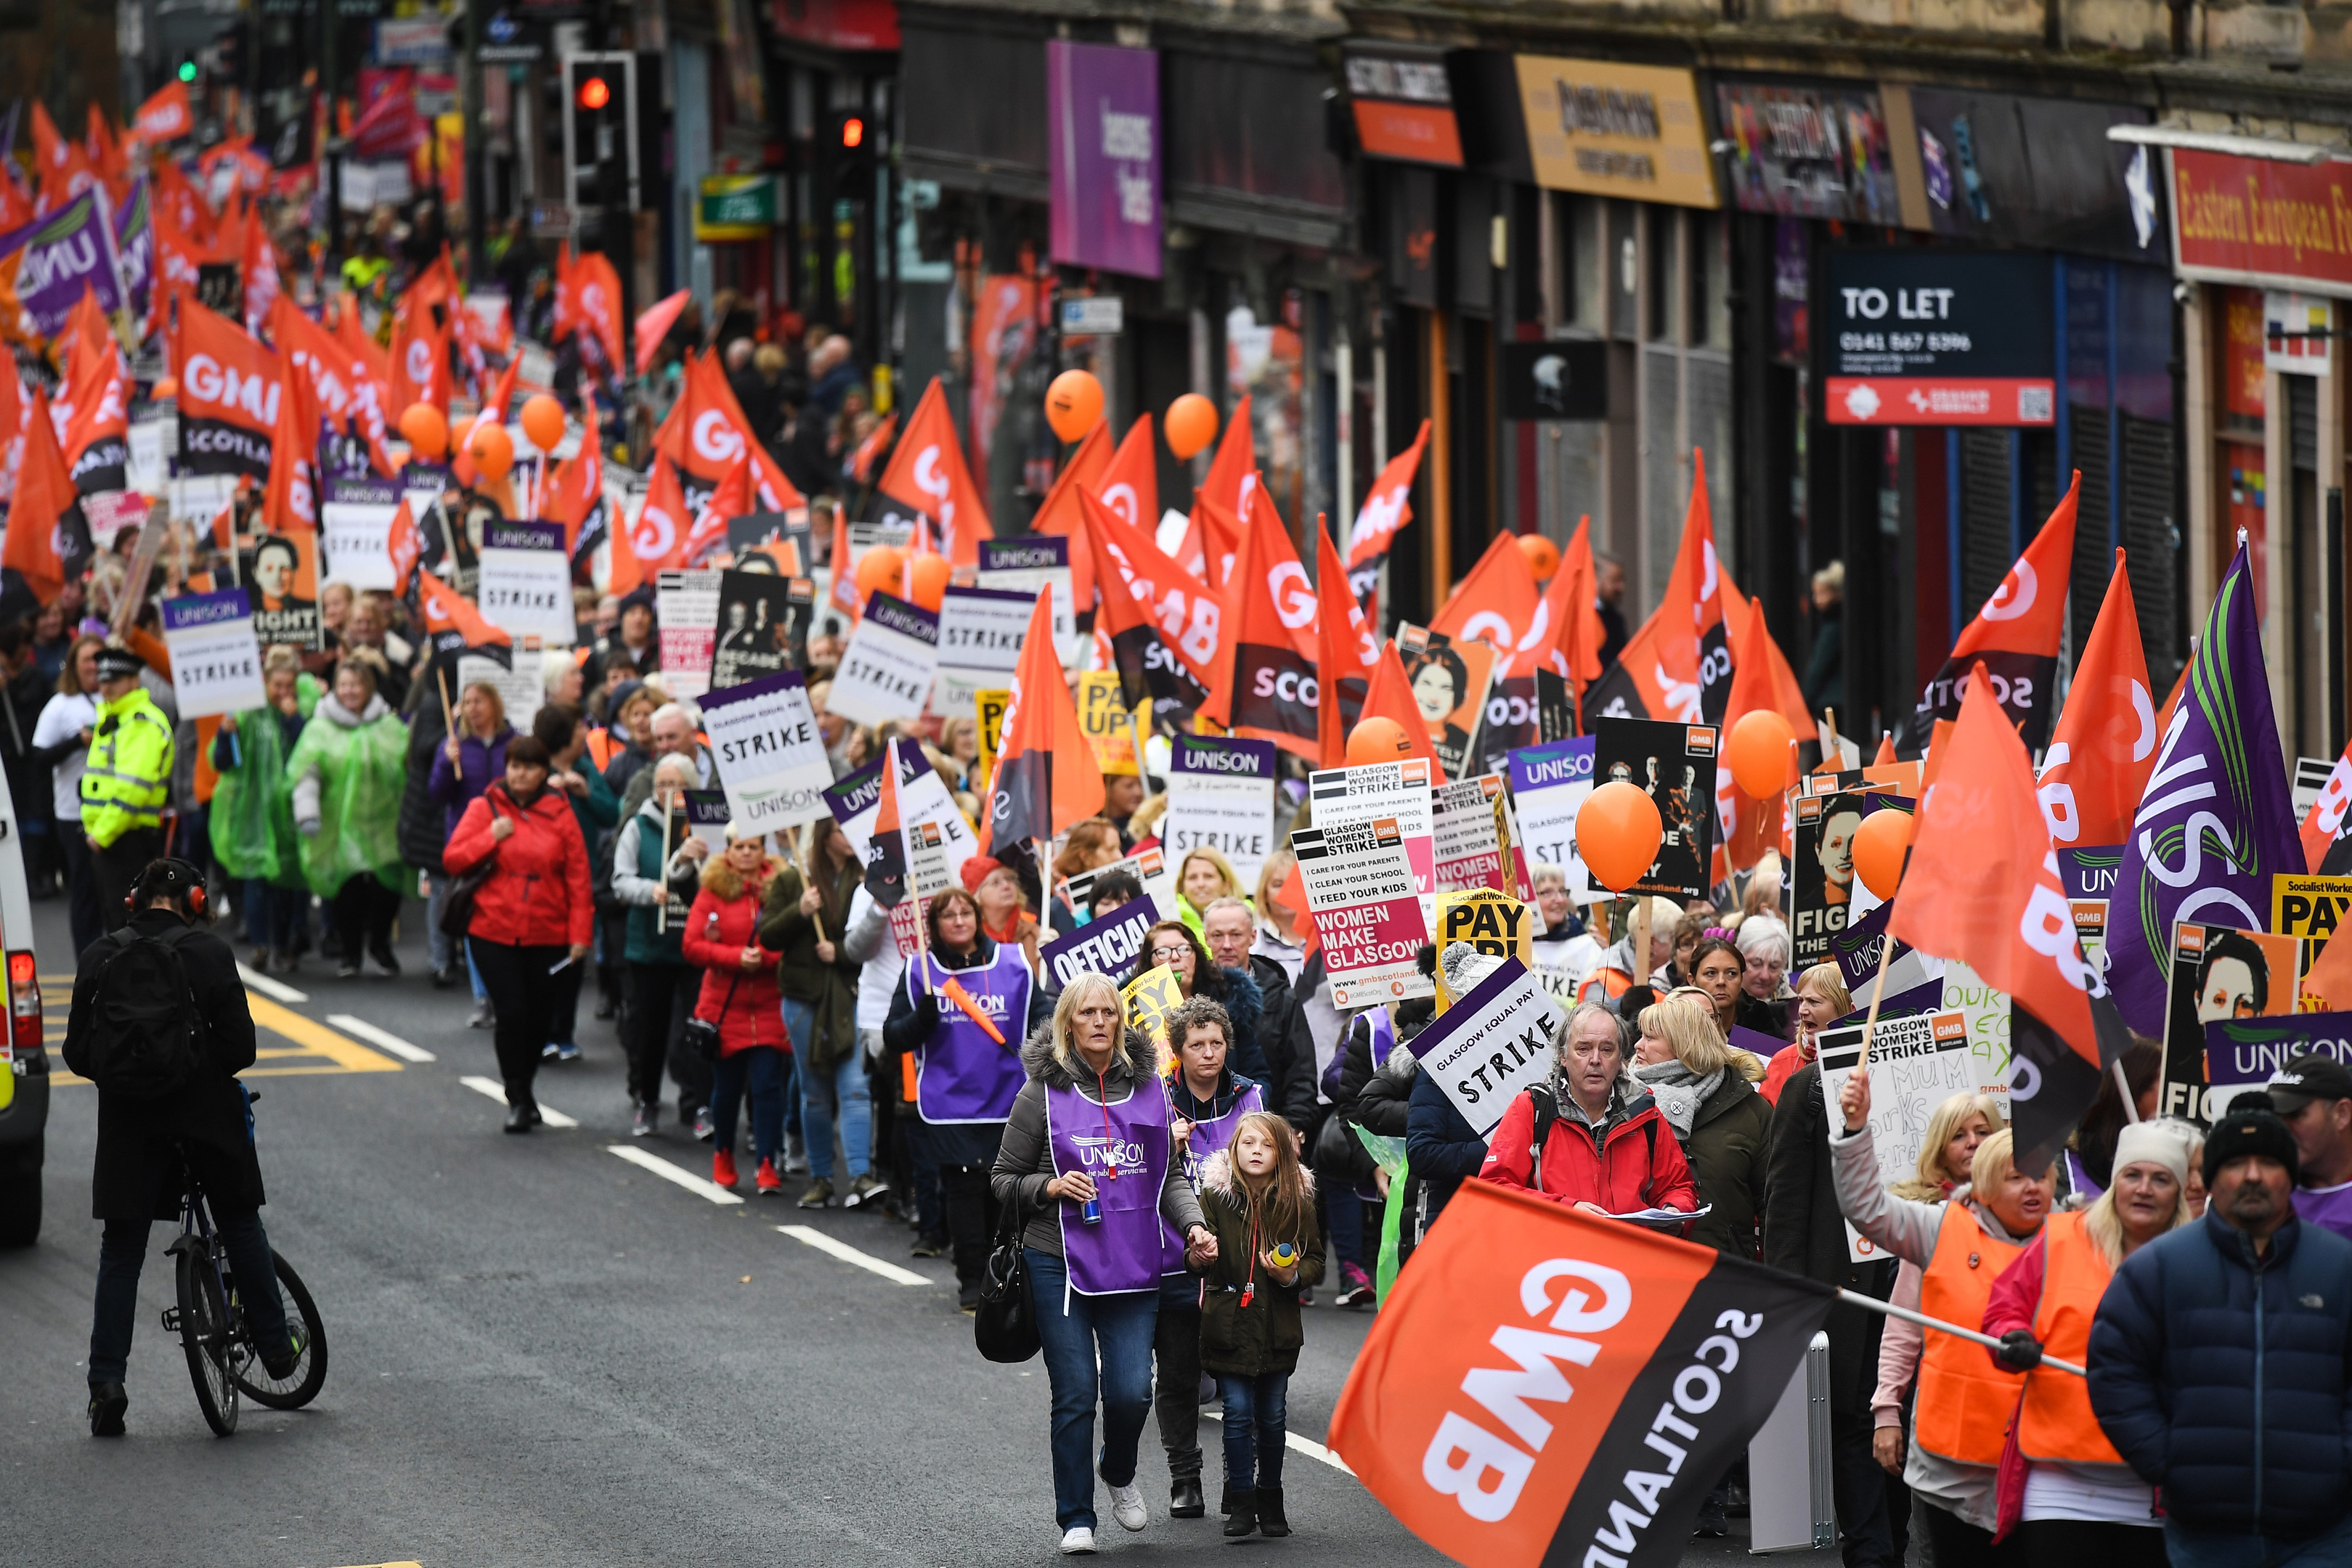 March for equal pay for Glasgow council workers earlier this week (Jeff J Mitchell / Getty Images)